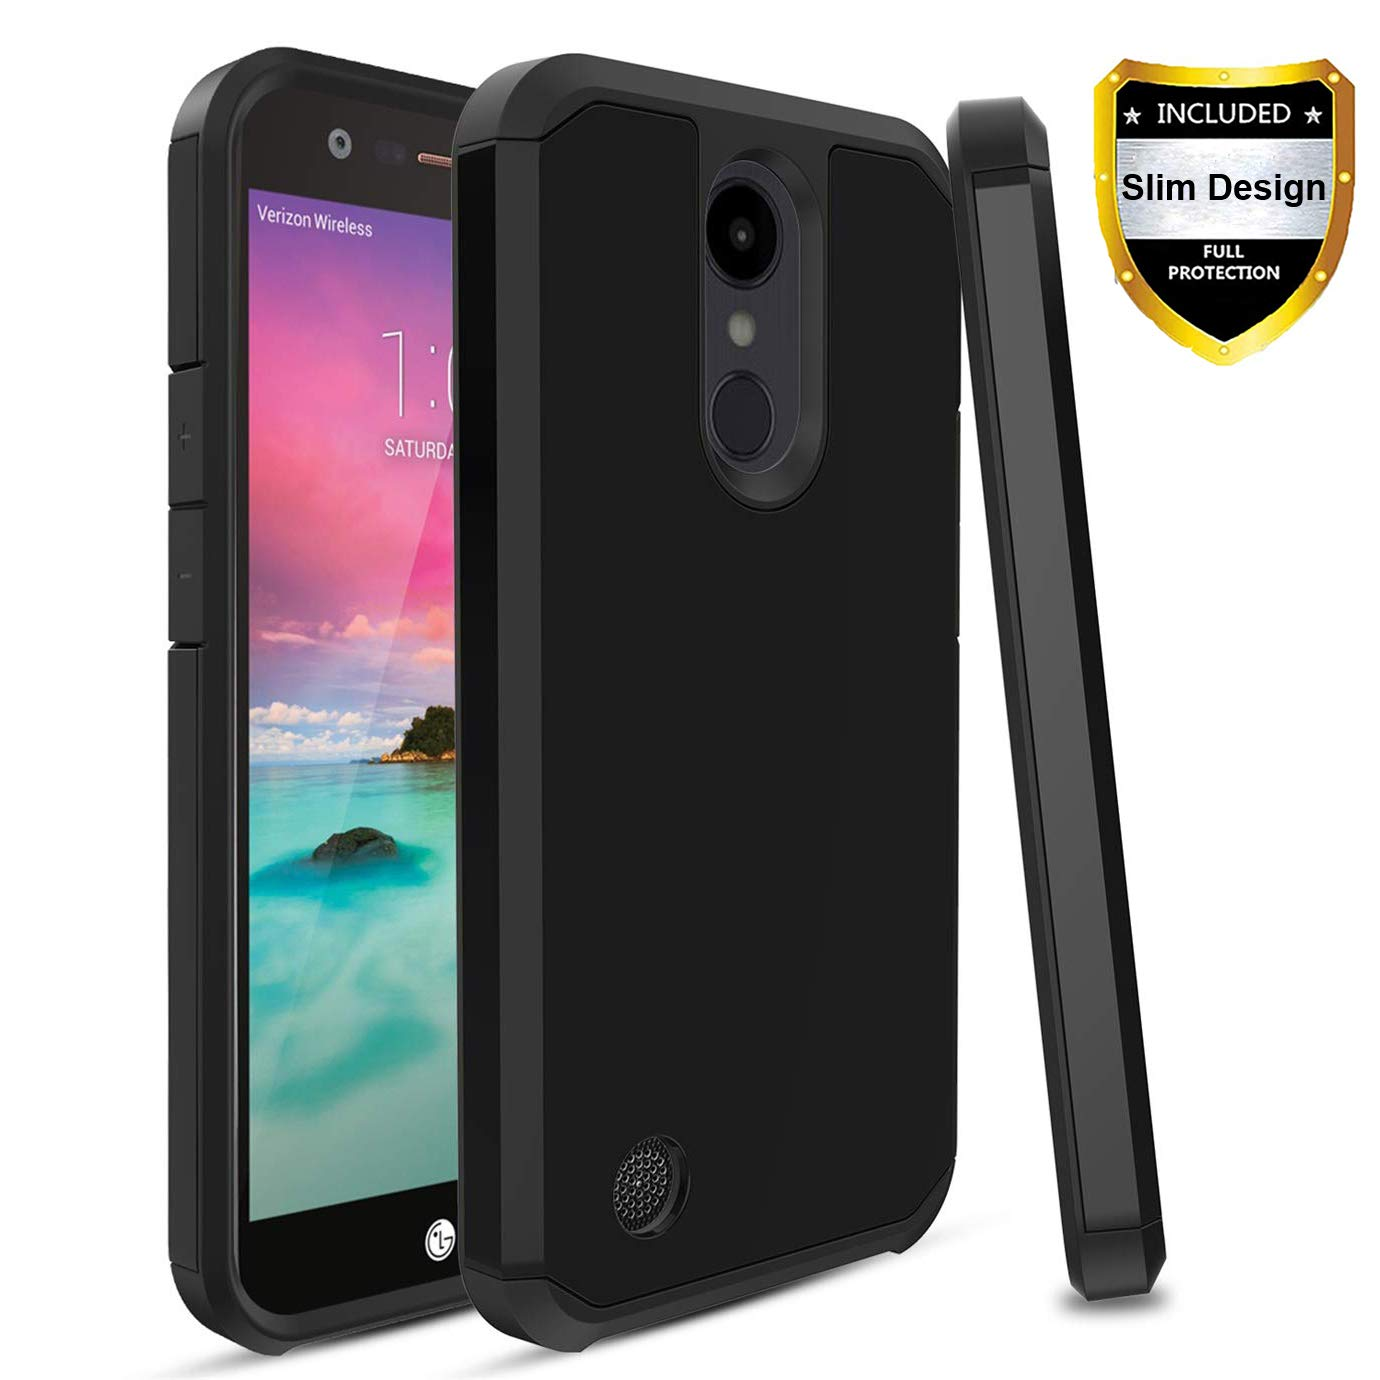 LG K20 Plus Case/LG K20 V Case/LG K20 Case/LG Harmony Case/LG Grace Case Hybrid Hard Shockproof Slim Fit Heavy Duty Protective Cover - Black